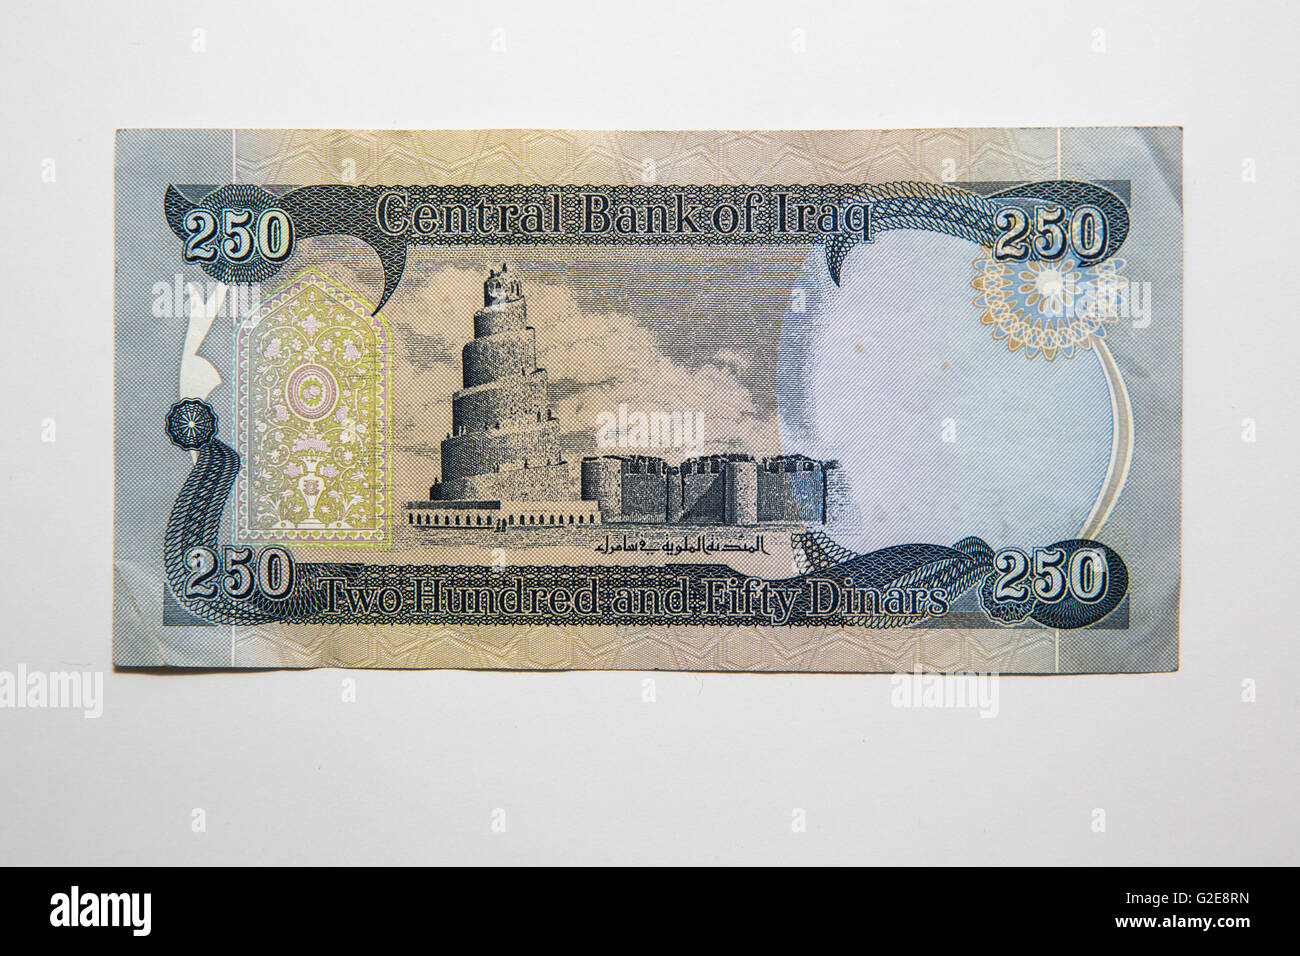 The back of the Iraq 250 Dinars note - Stock Image